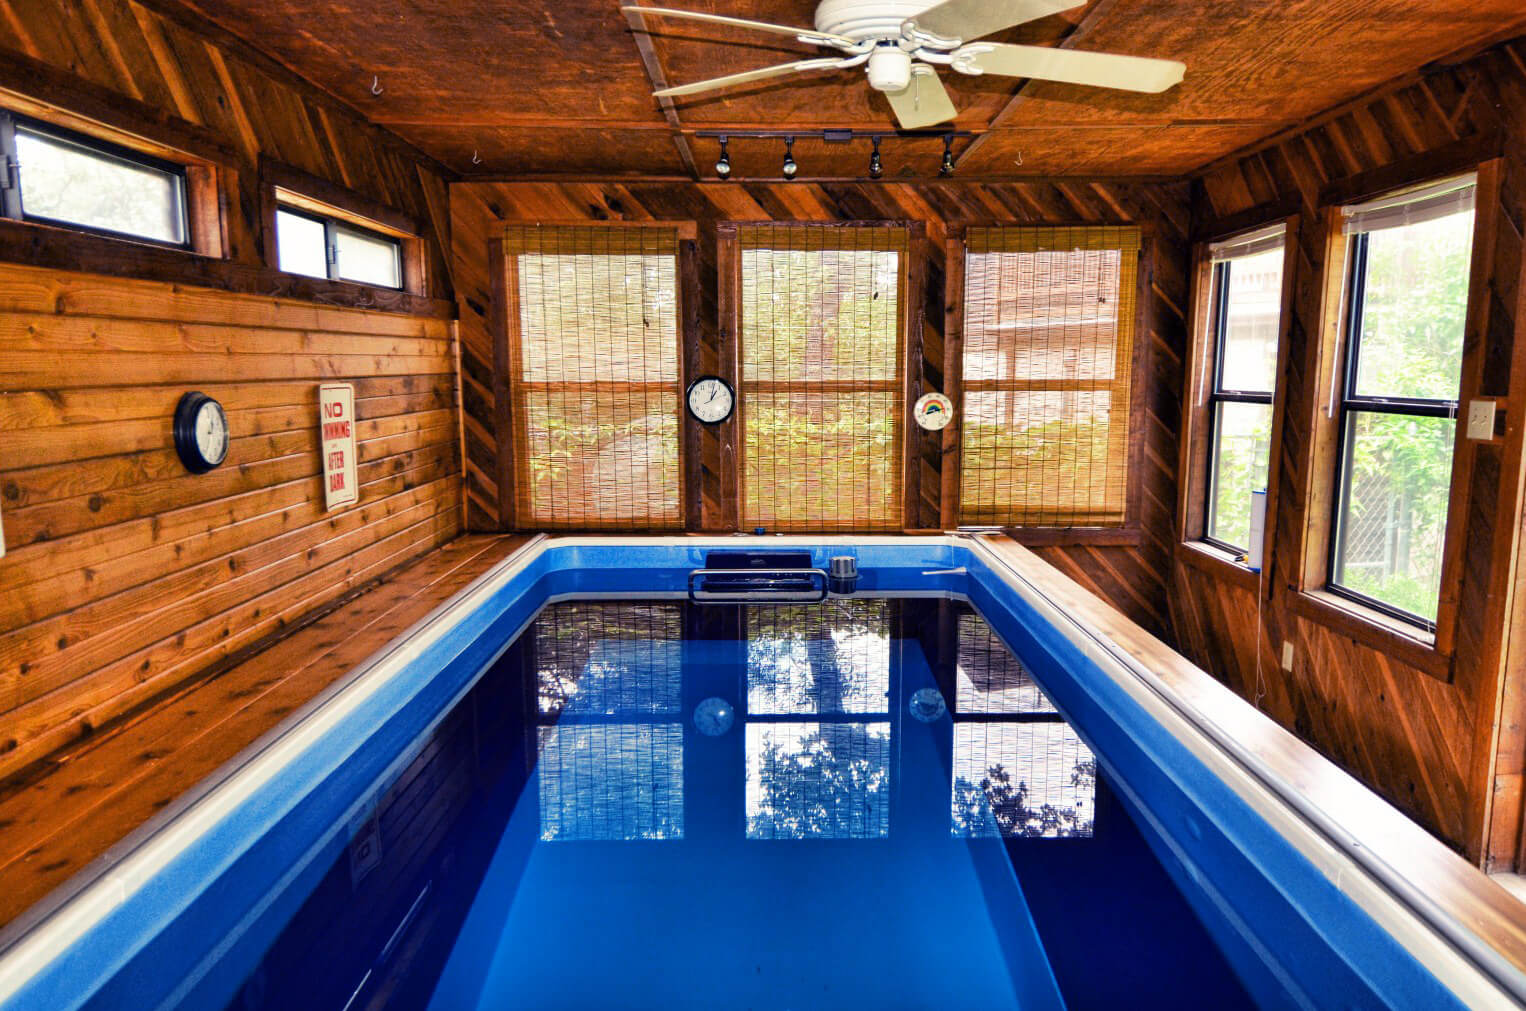 The Endless Pool in Pat Segar's pool house gets daily use for aquatic therapy